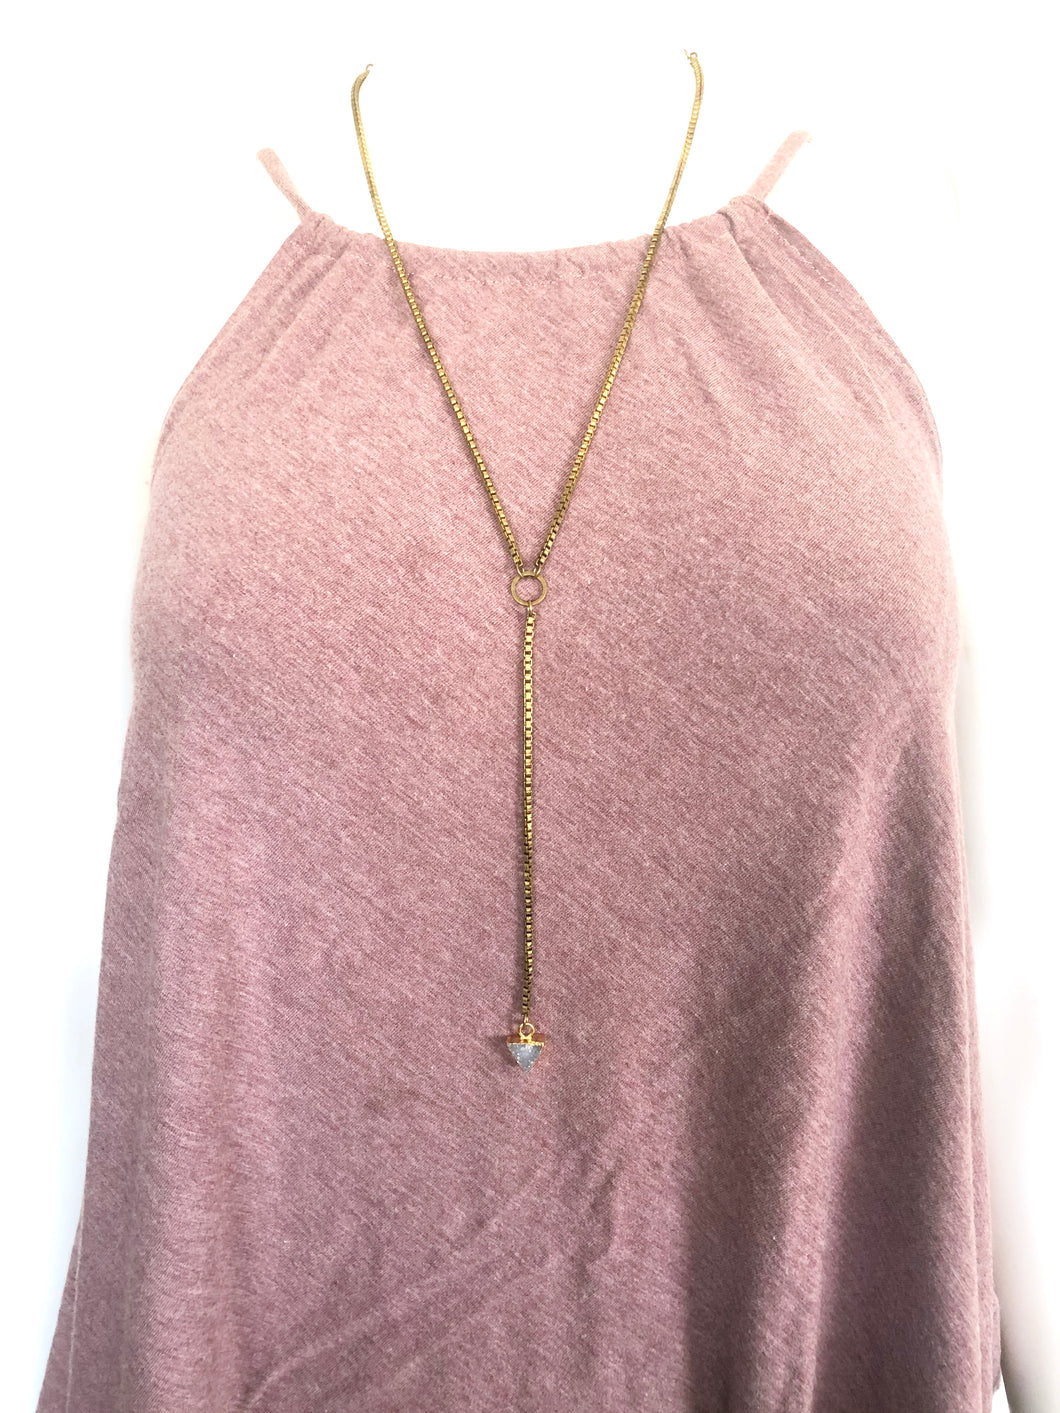 Druzy Drop Pendant Necklace